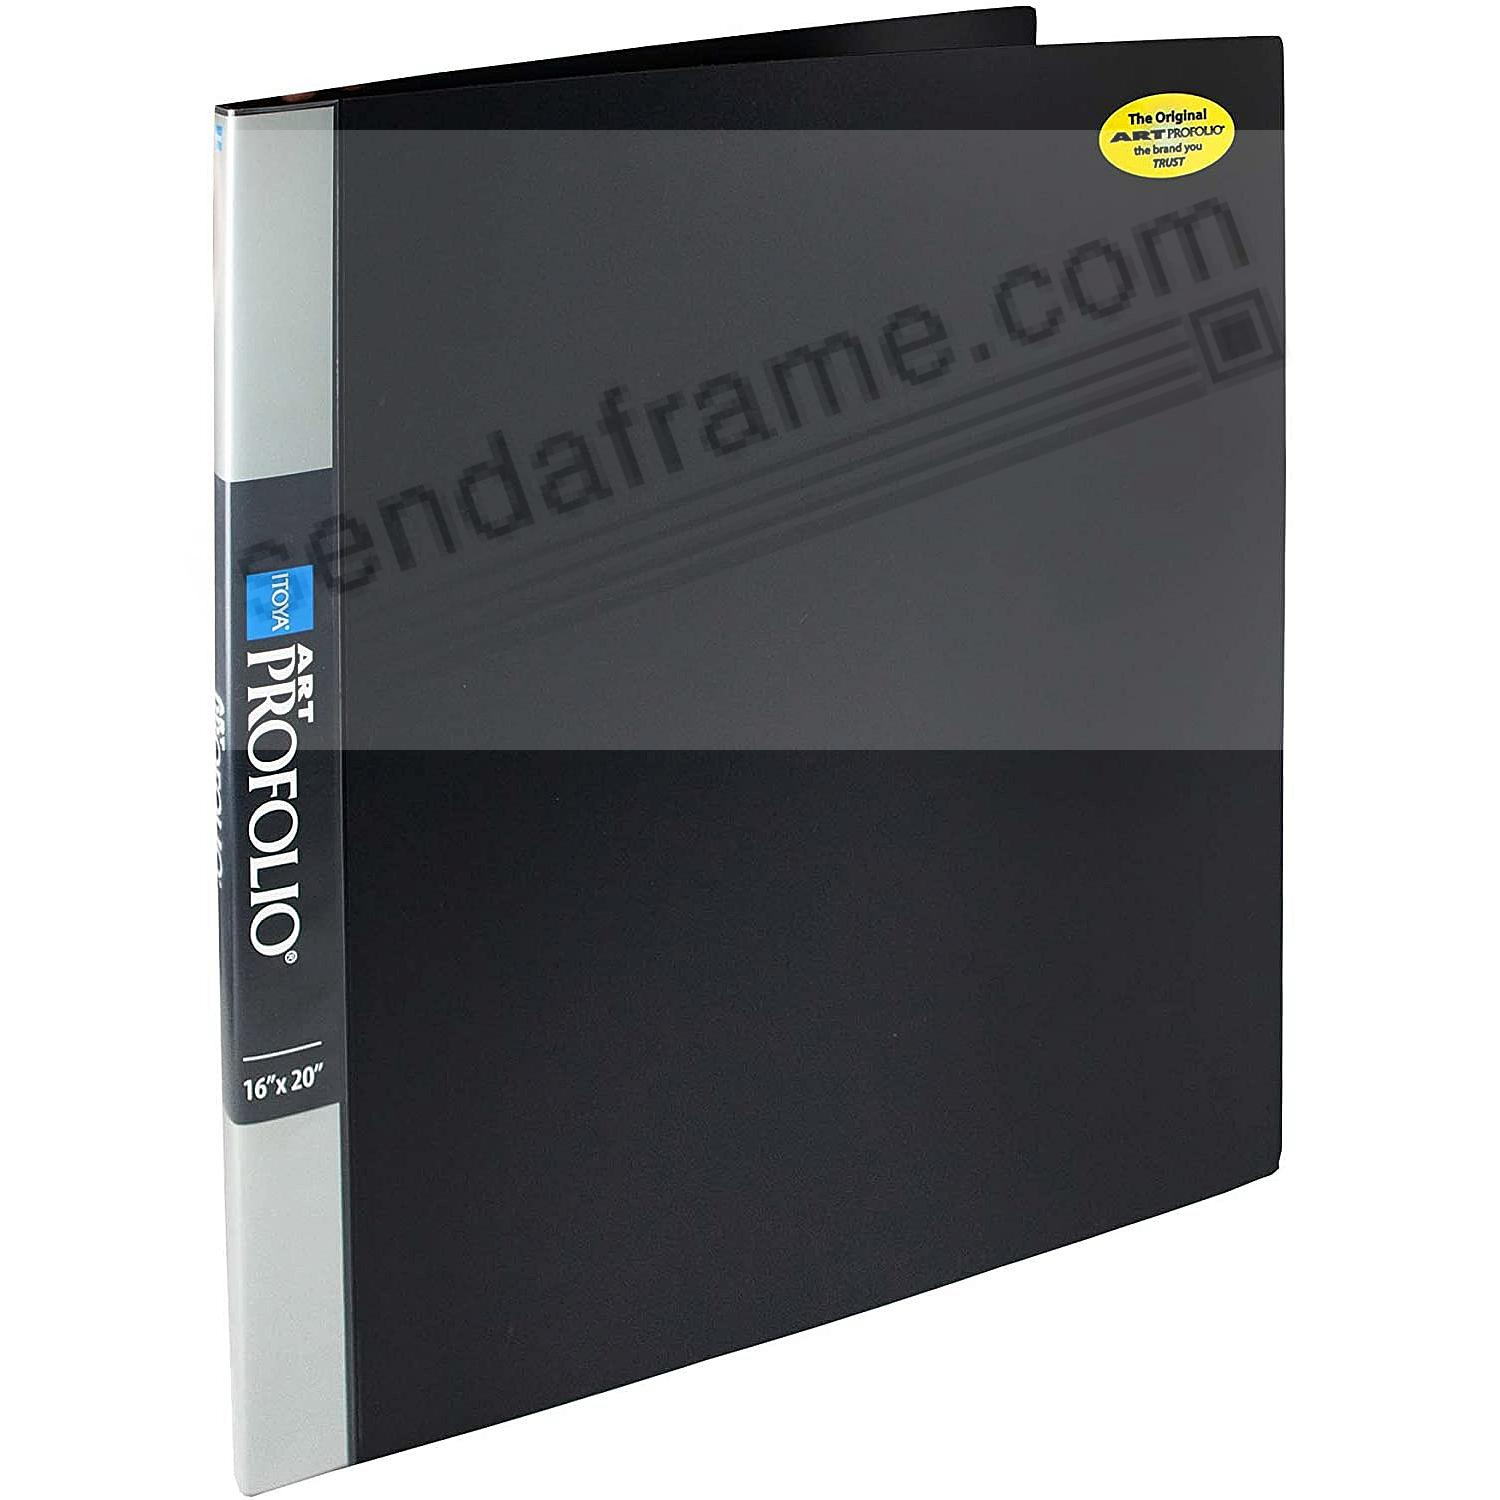 The Original PROFOLIO CLASSIC 16x20 presentation book by Itoya®